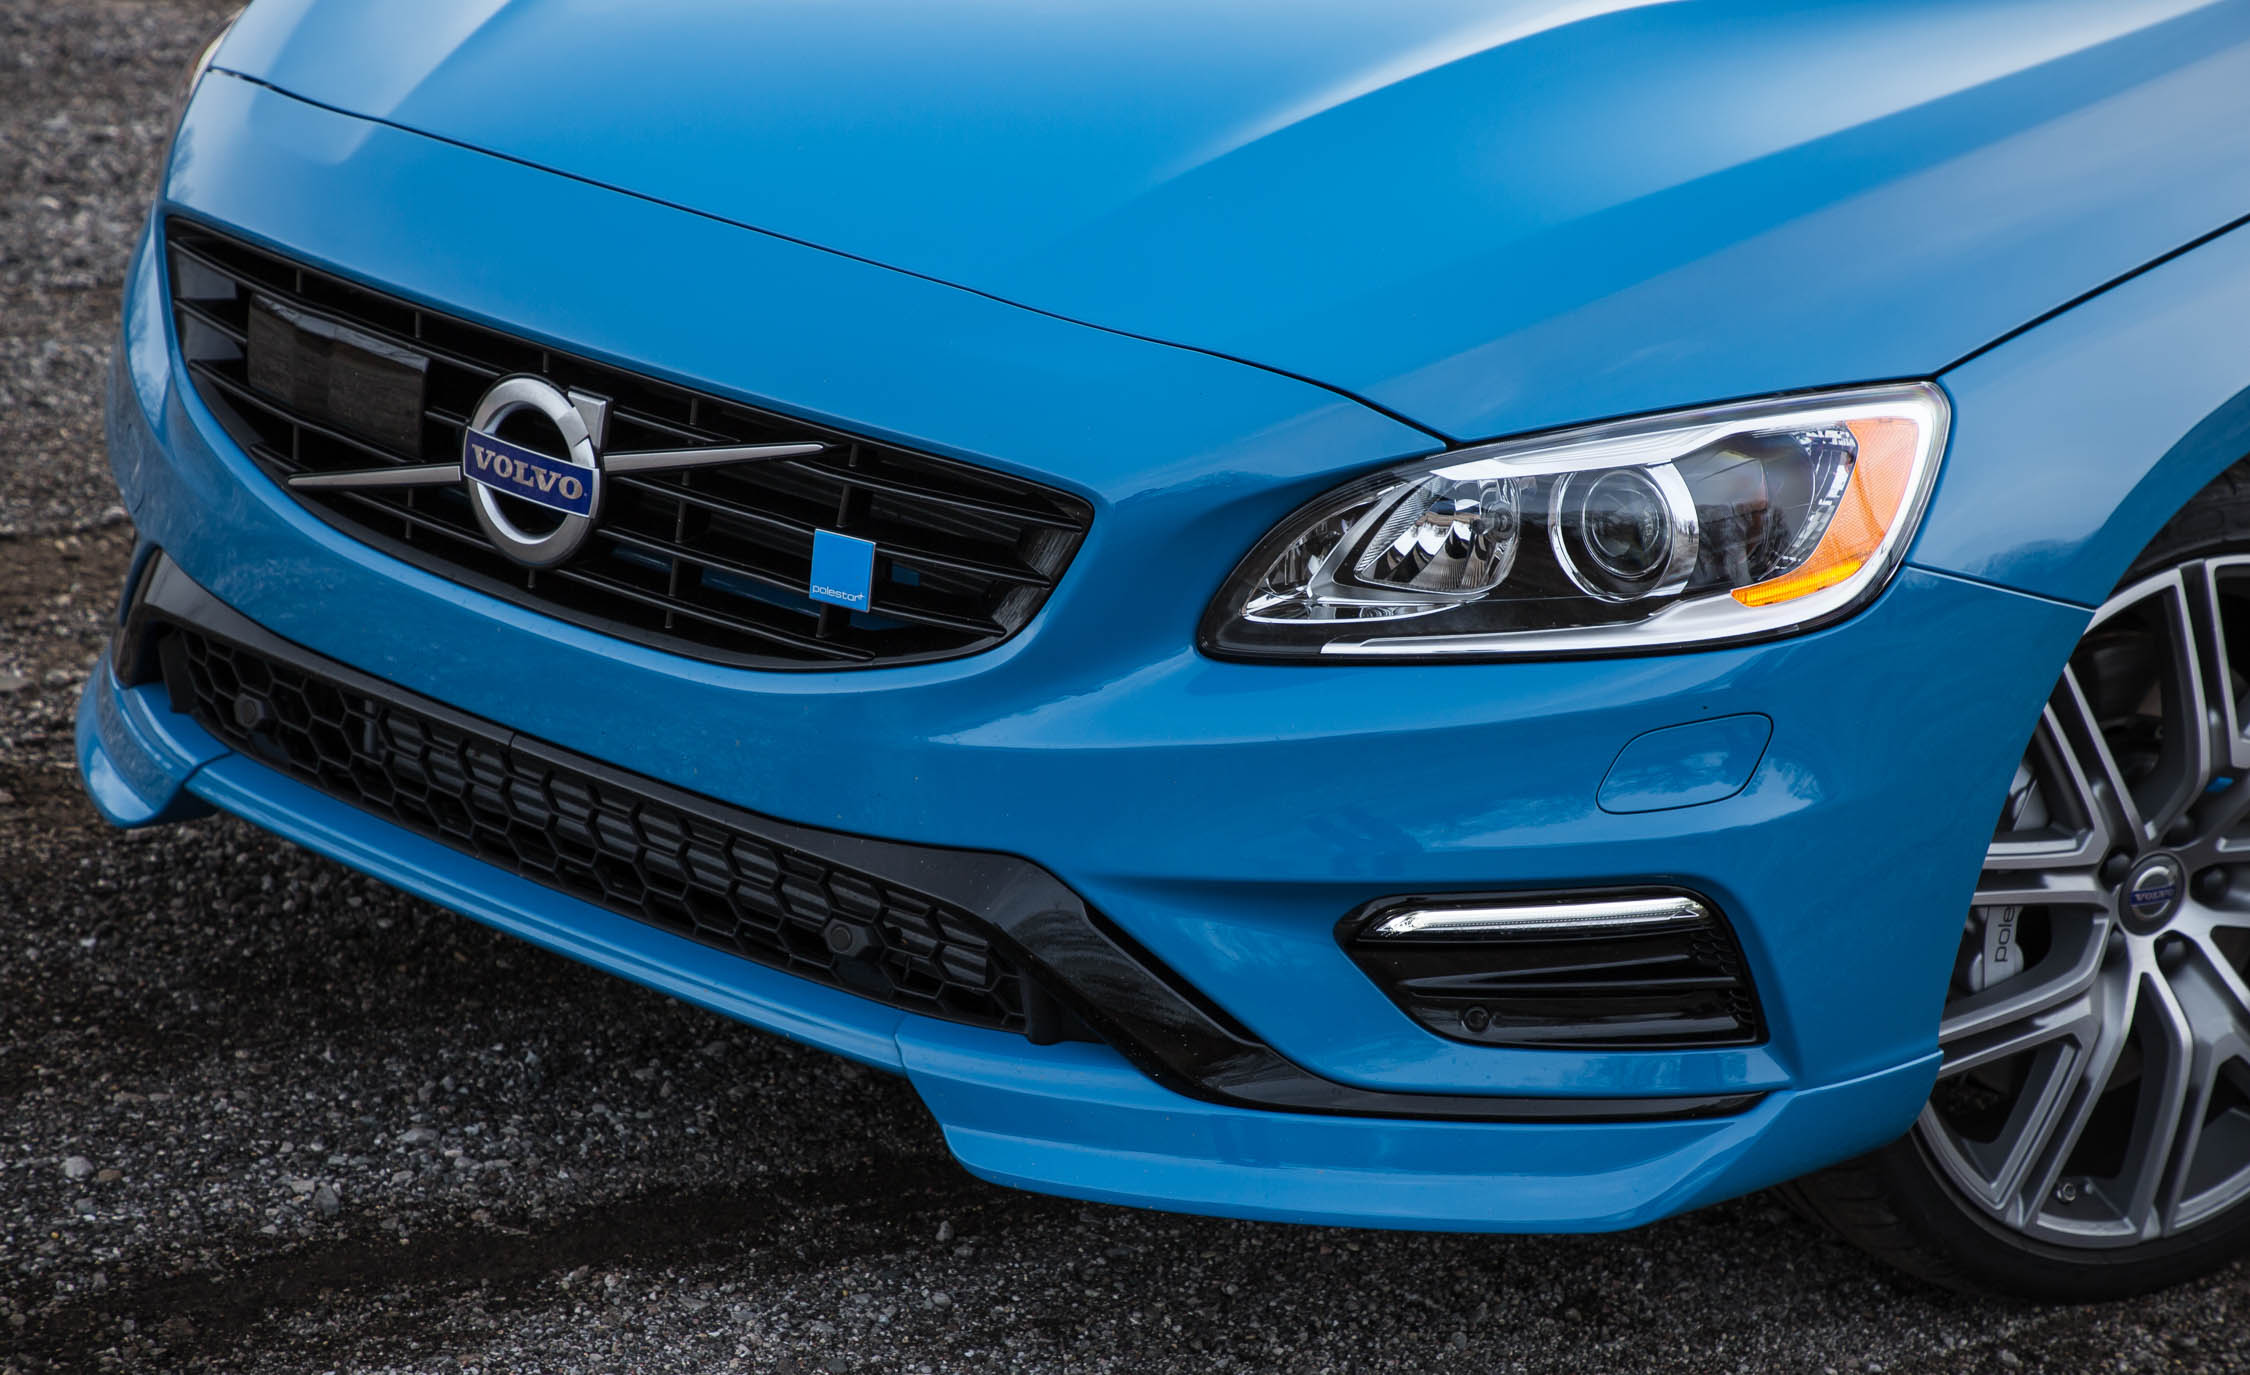 2017 Volvo V60 Polestar Exterior View Grille And Bumper (Photo 9 of 53)